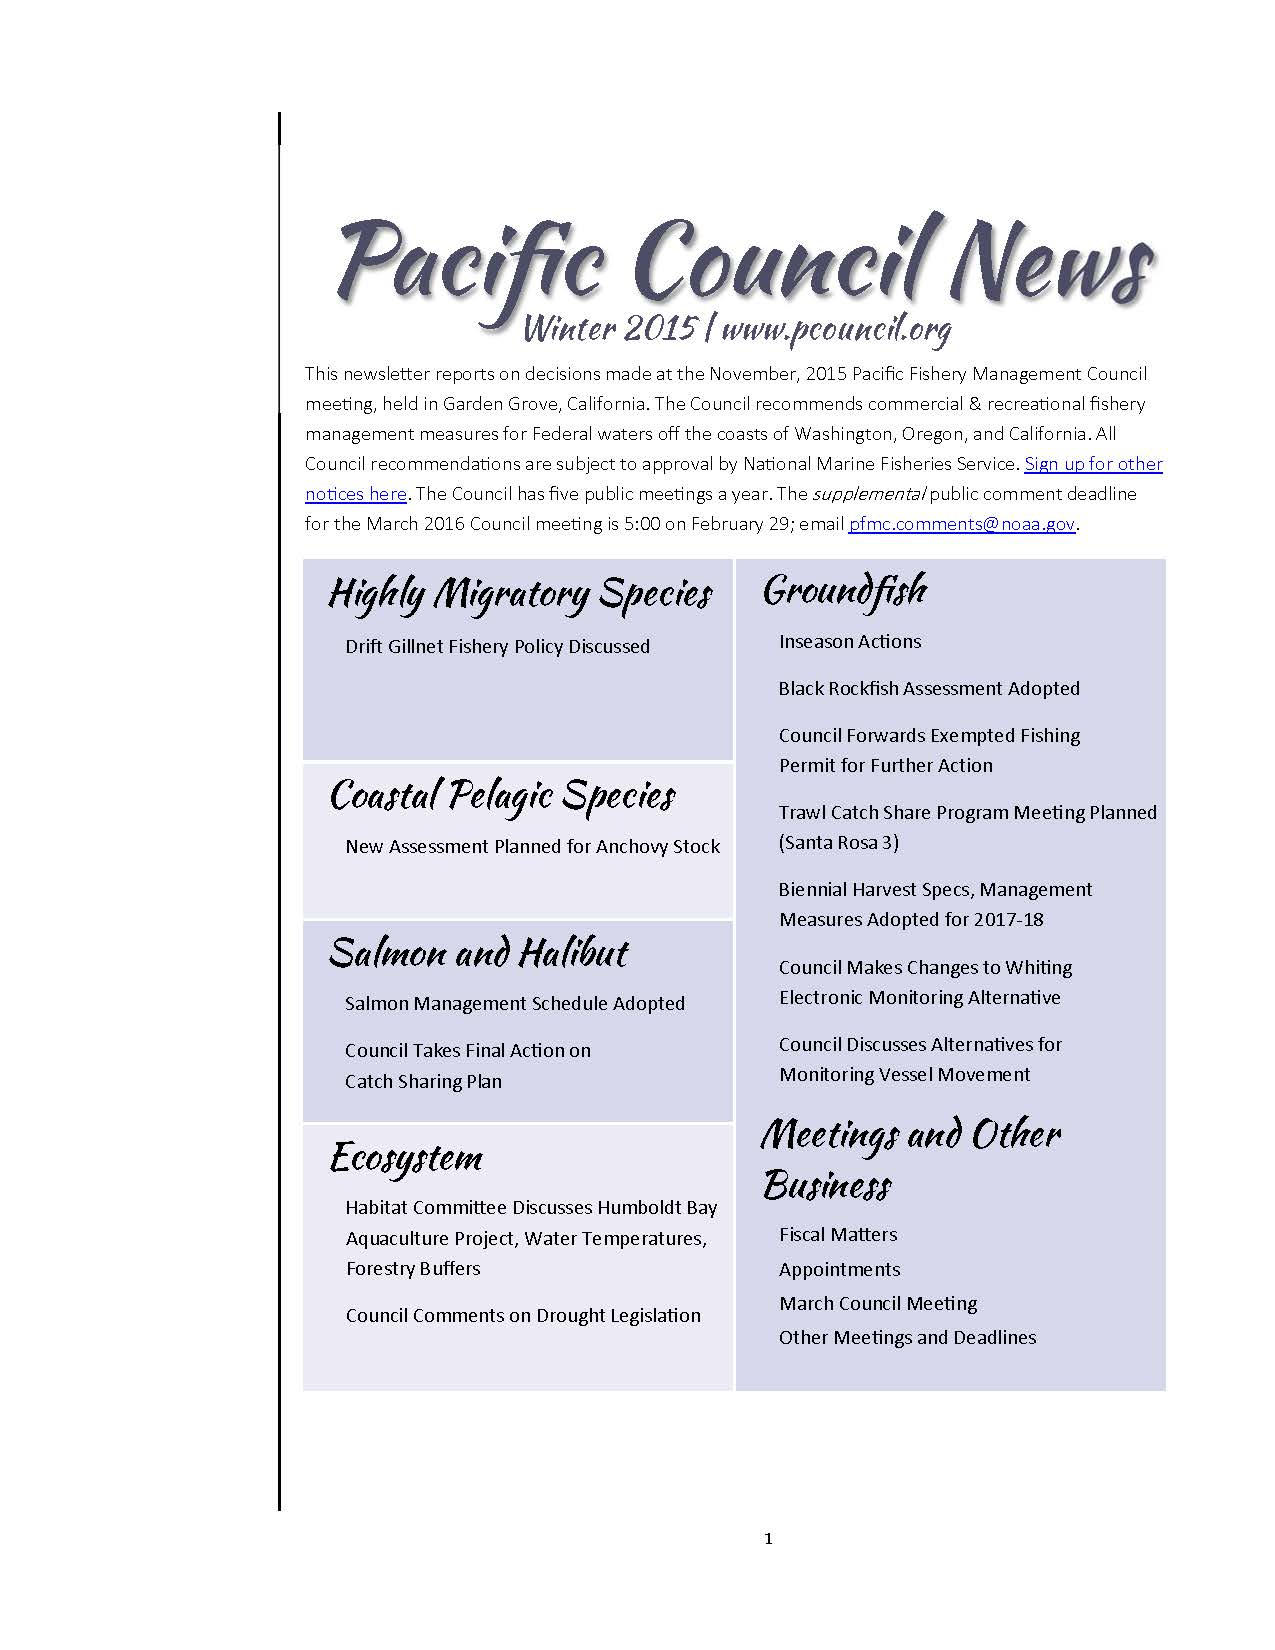 Winter 2015 newsletter image